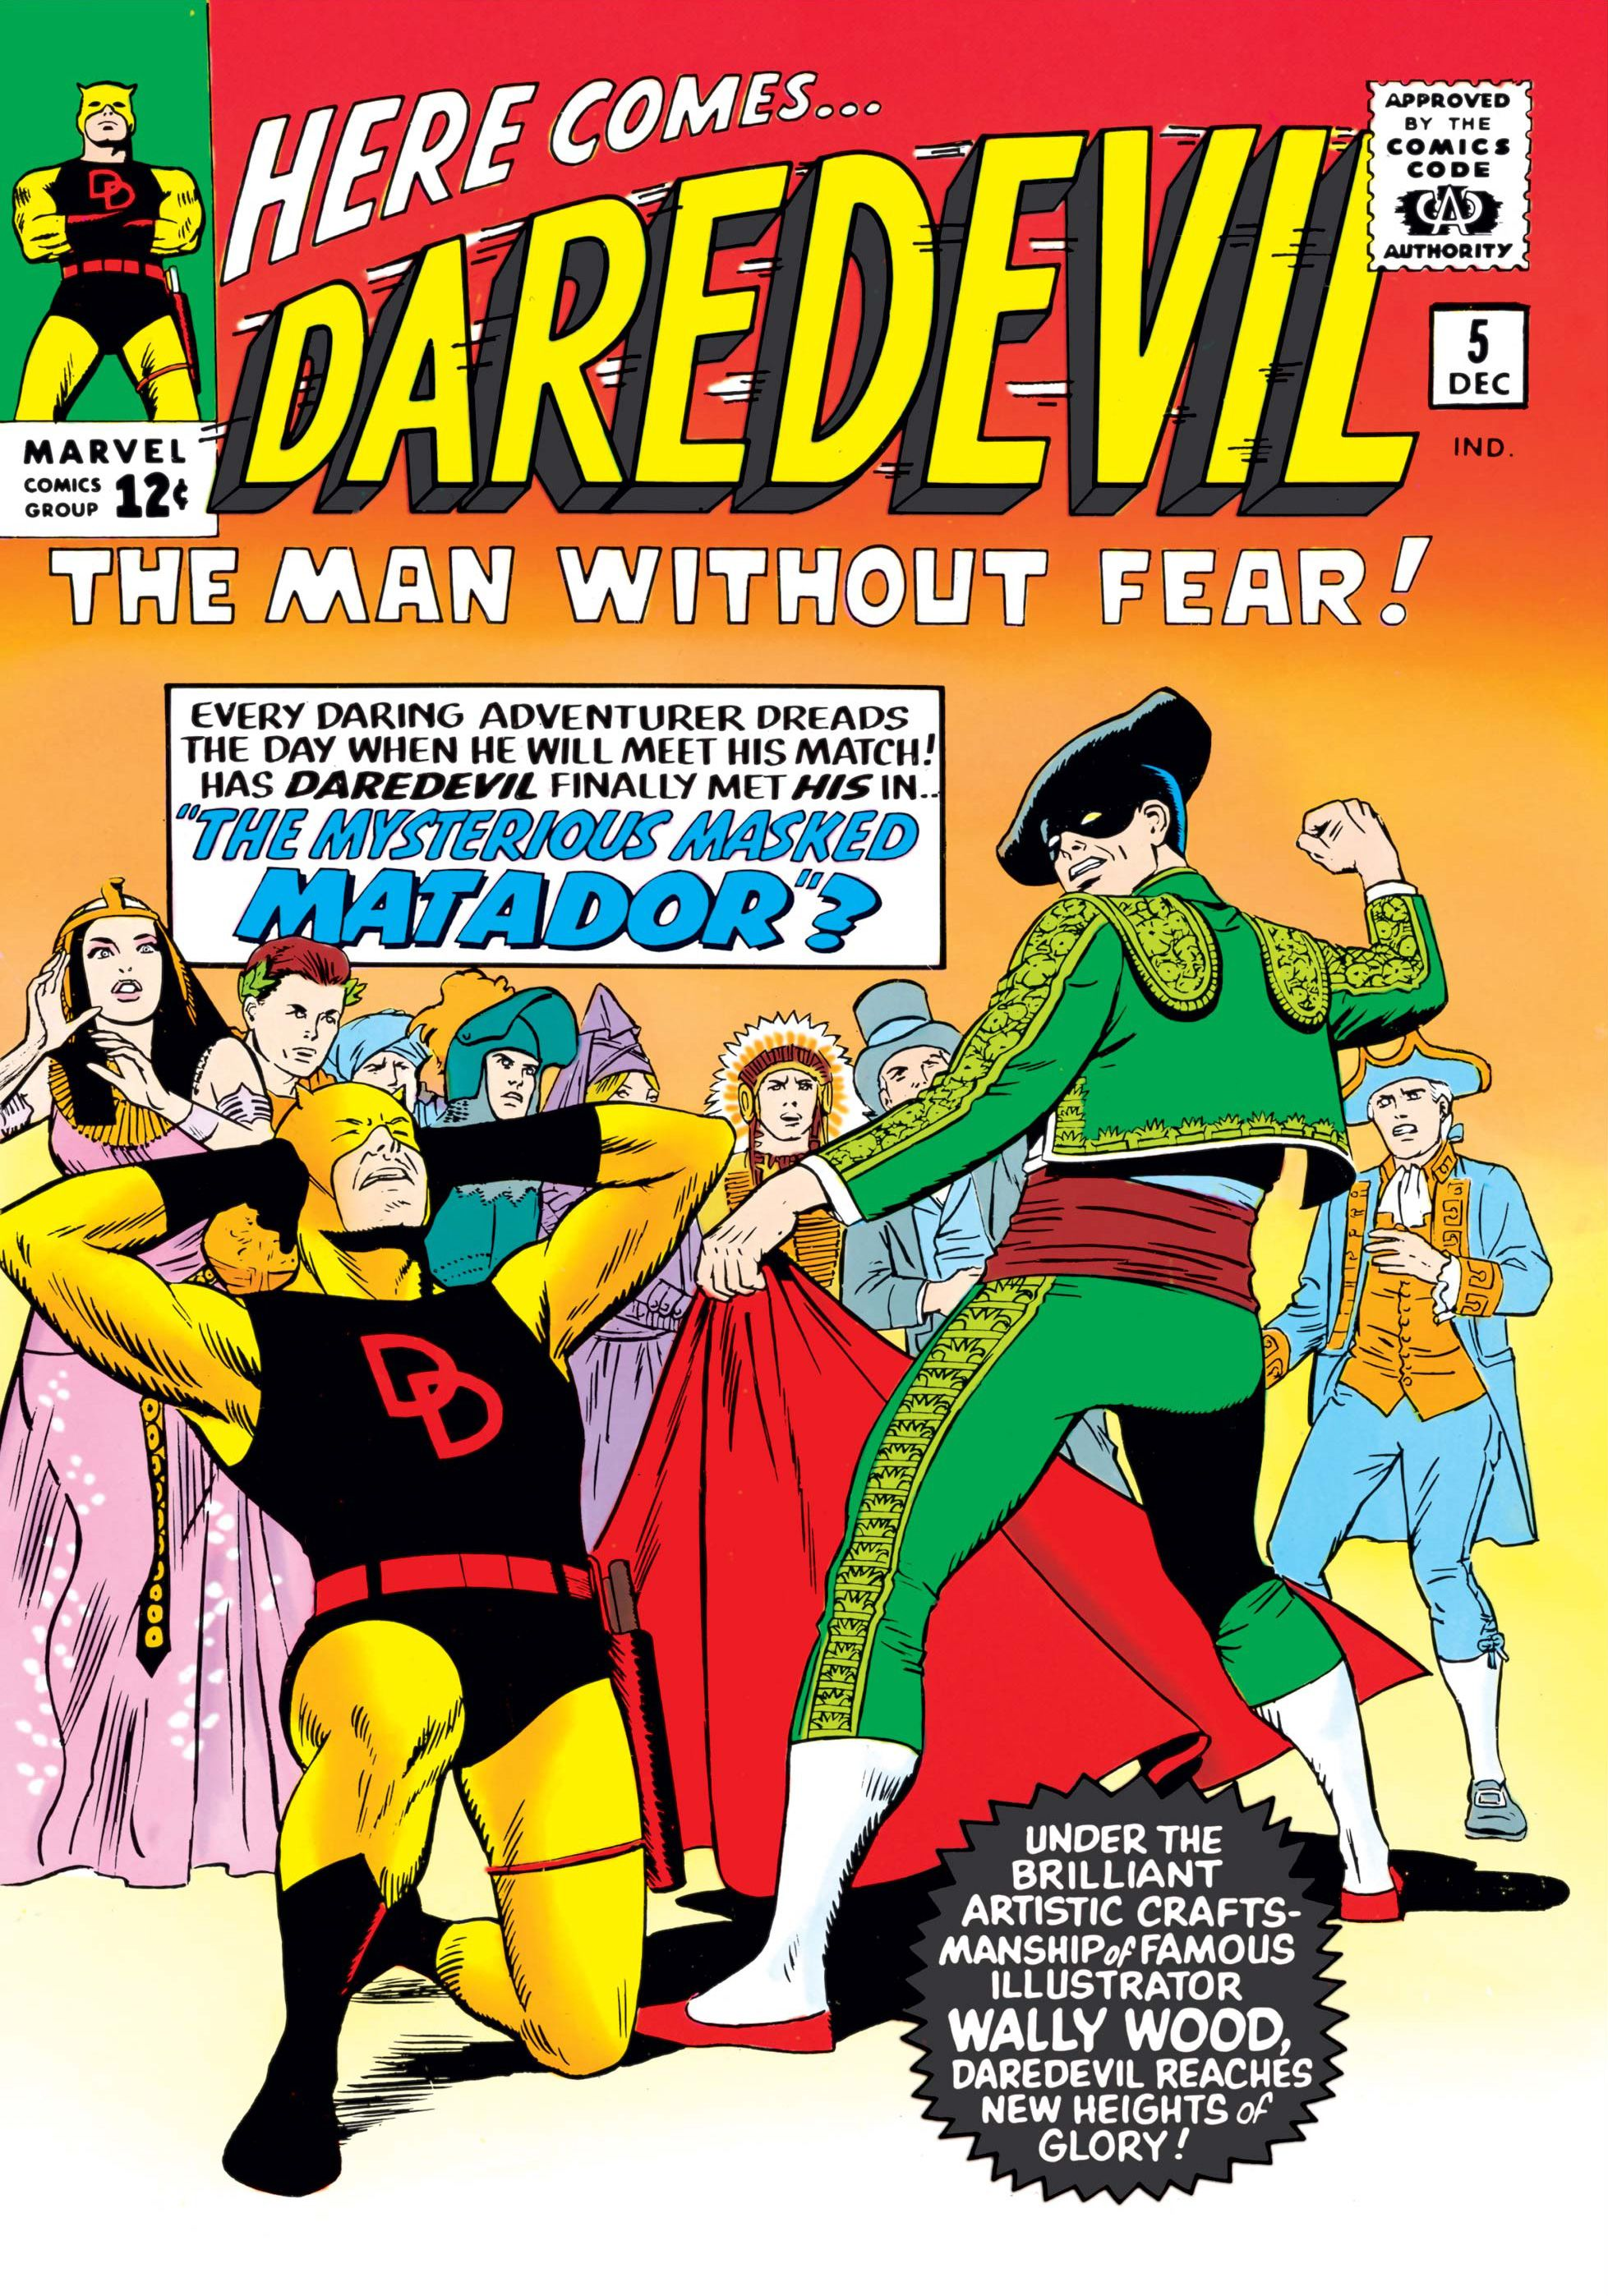 The cover for Daredevil issue 5, with a caption promoting art by Wally Wood.